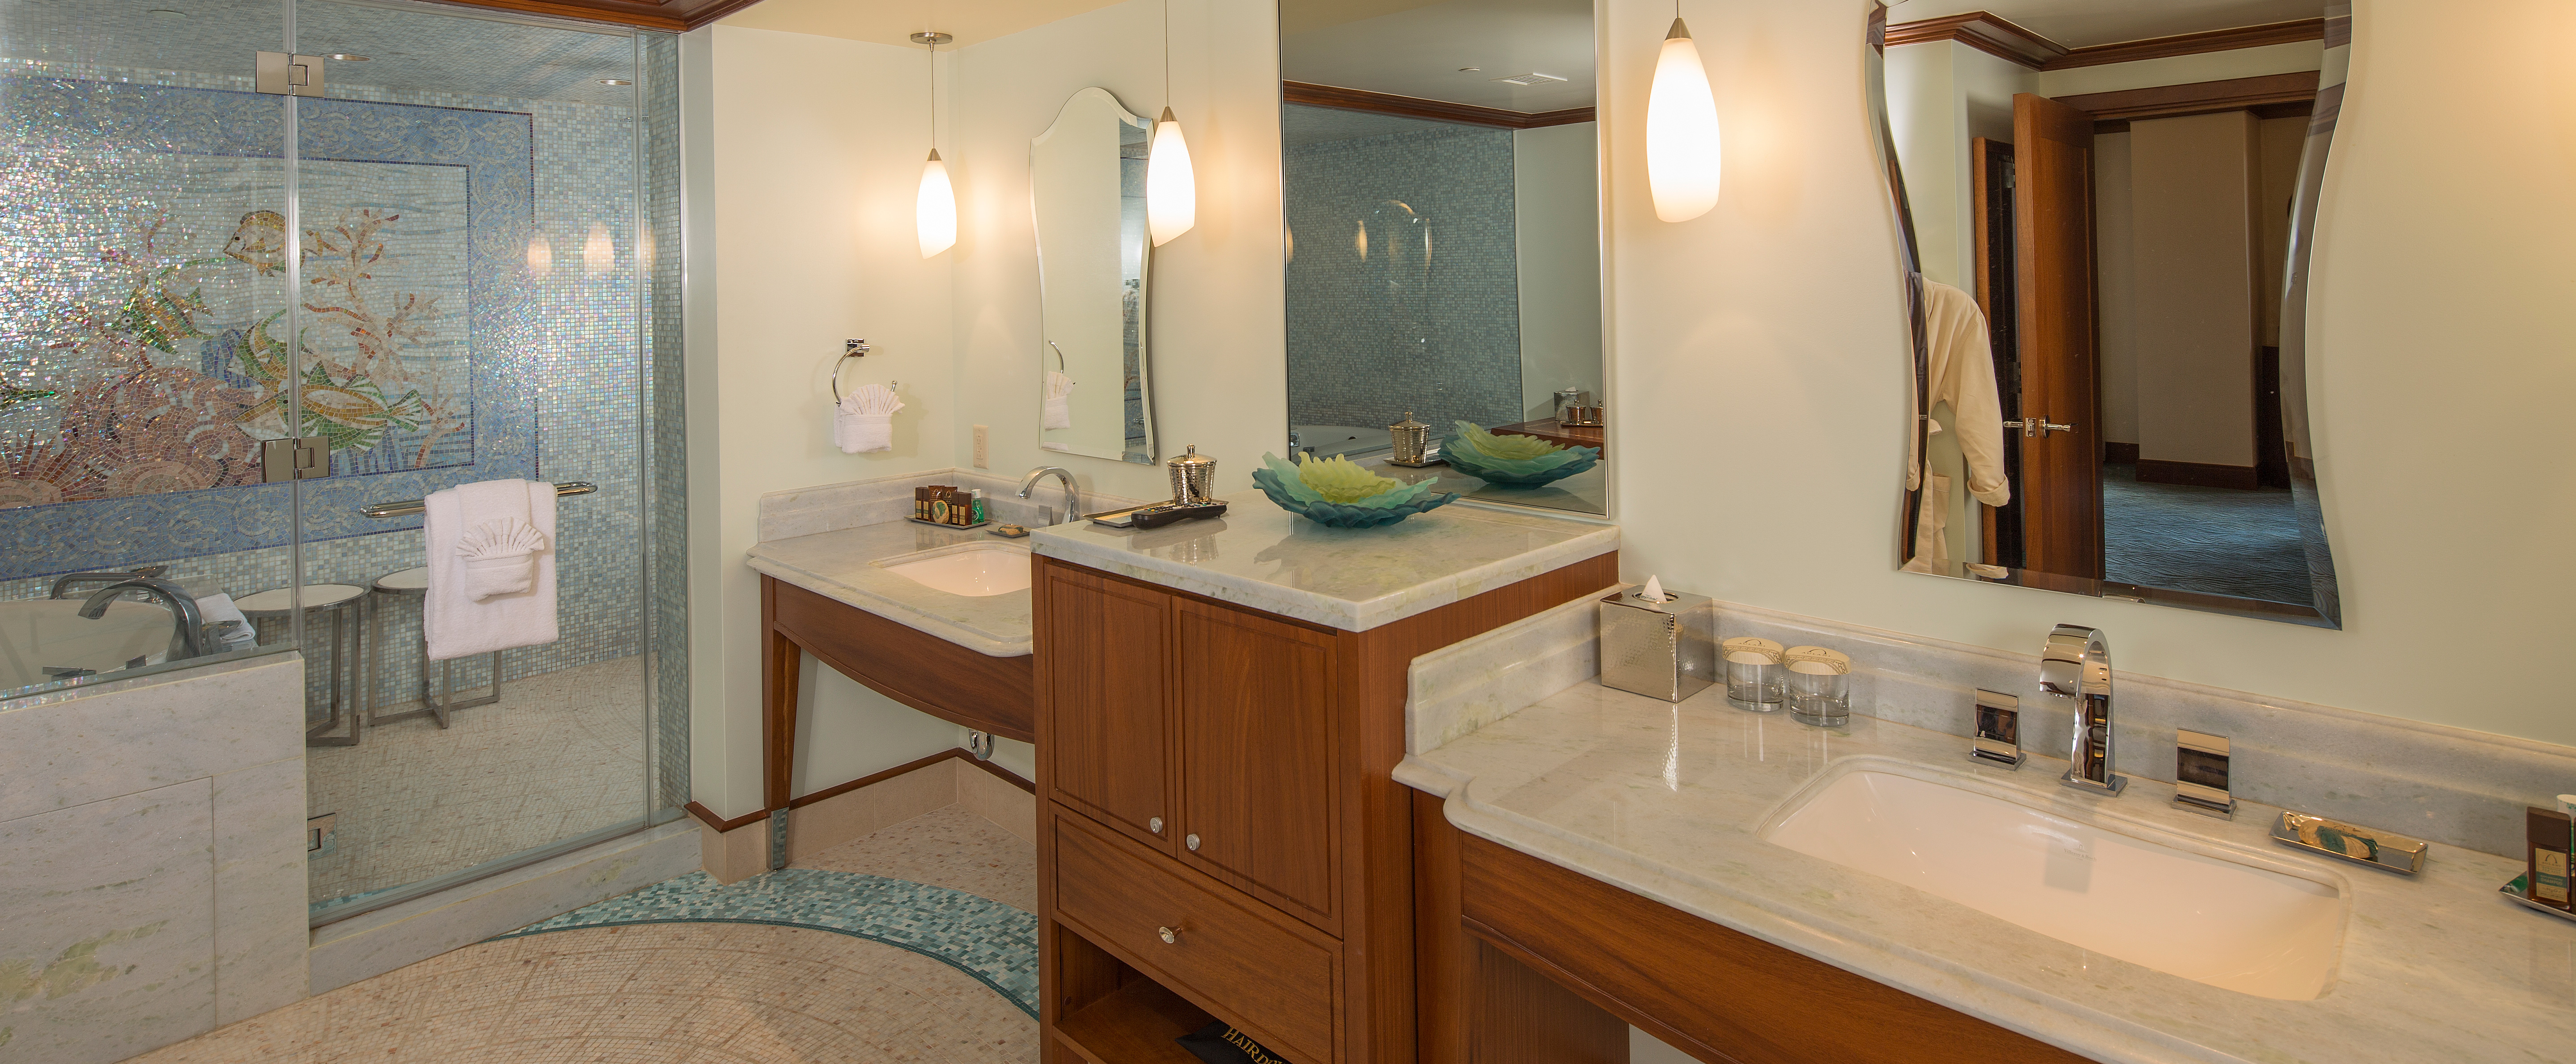 The master bathroom features 2 sinks and a large walk in shower and tub area with tiled mosaic art